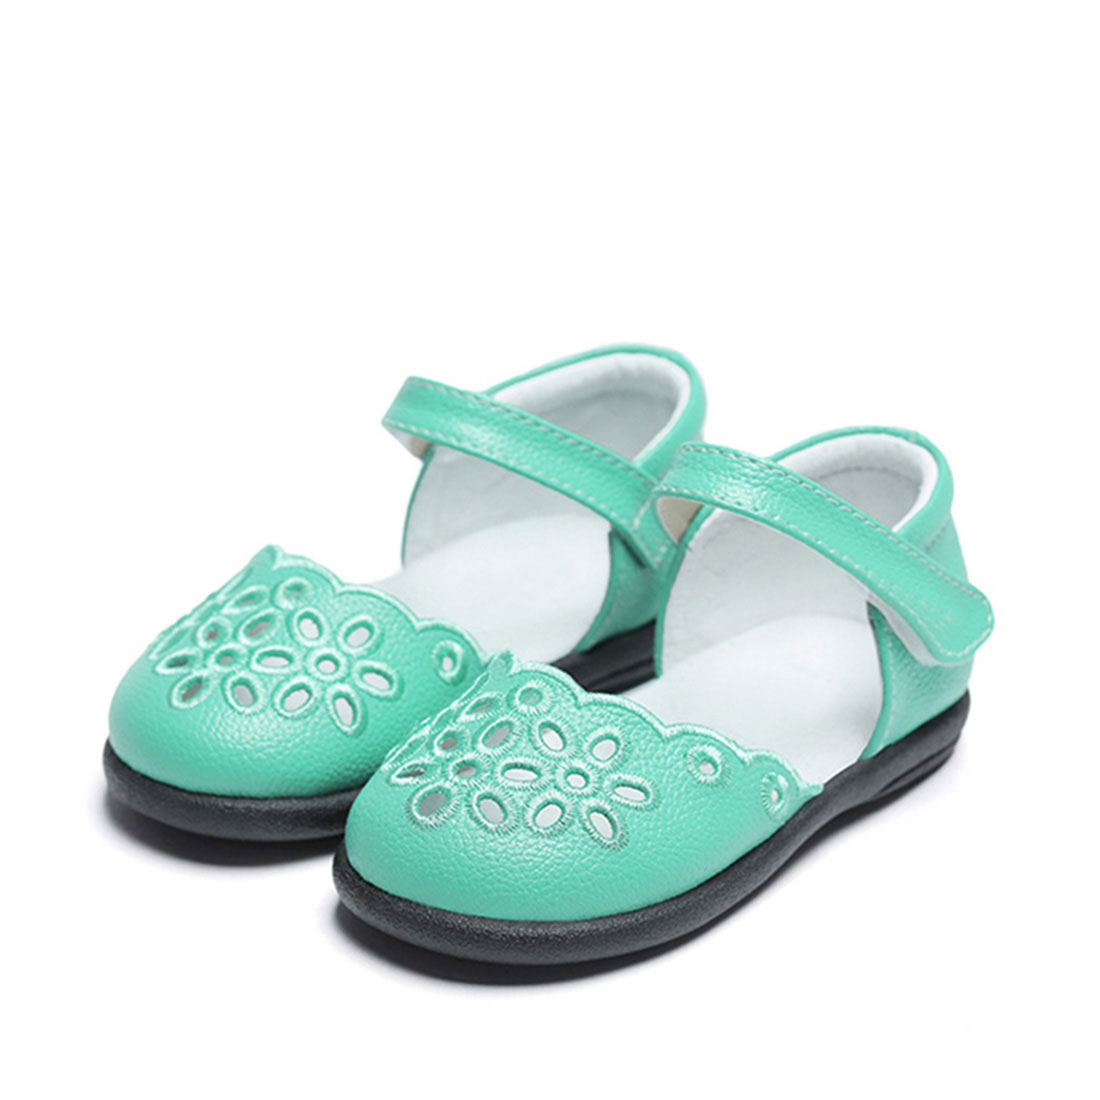 Litchi stria calf leather flat cute summer piercing kids sandals shoes for girls